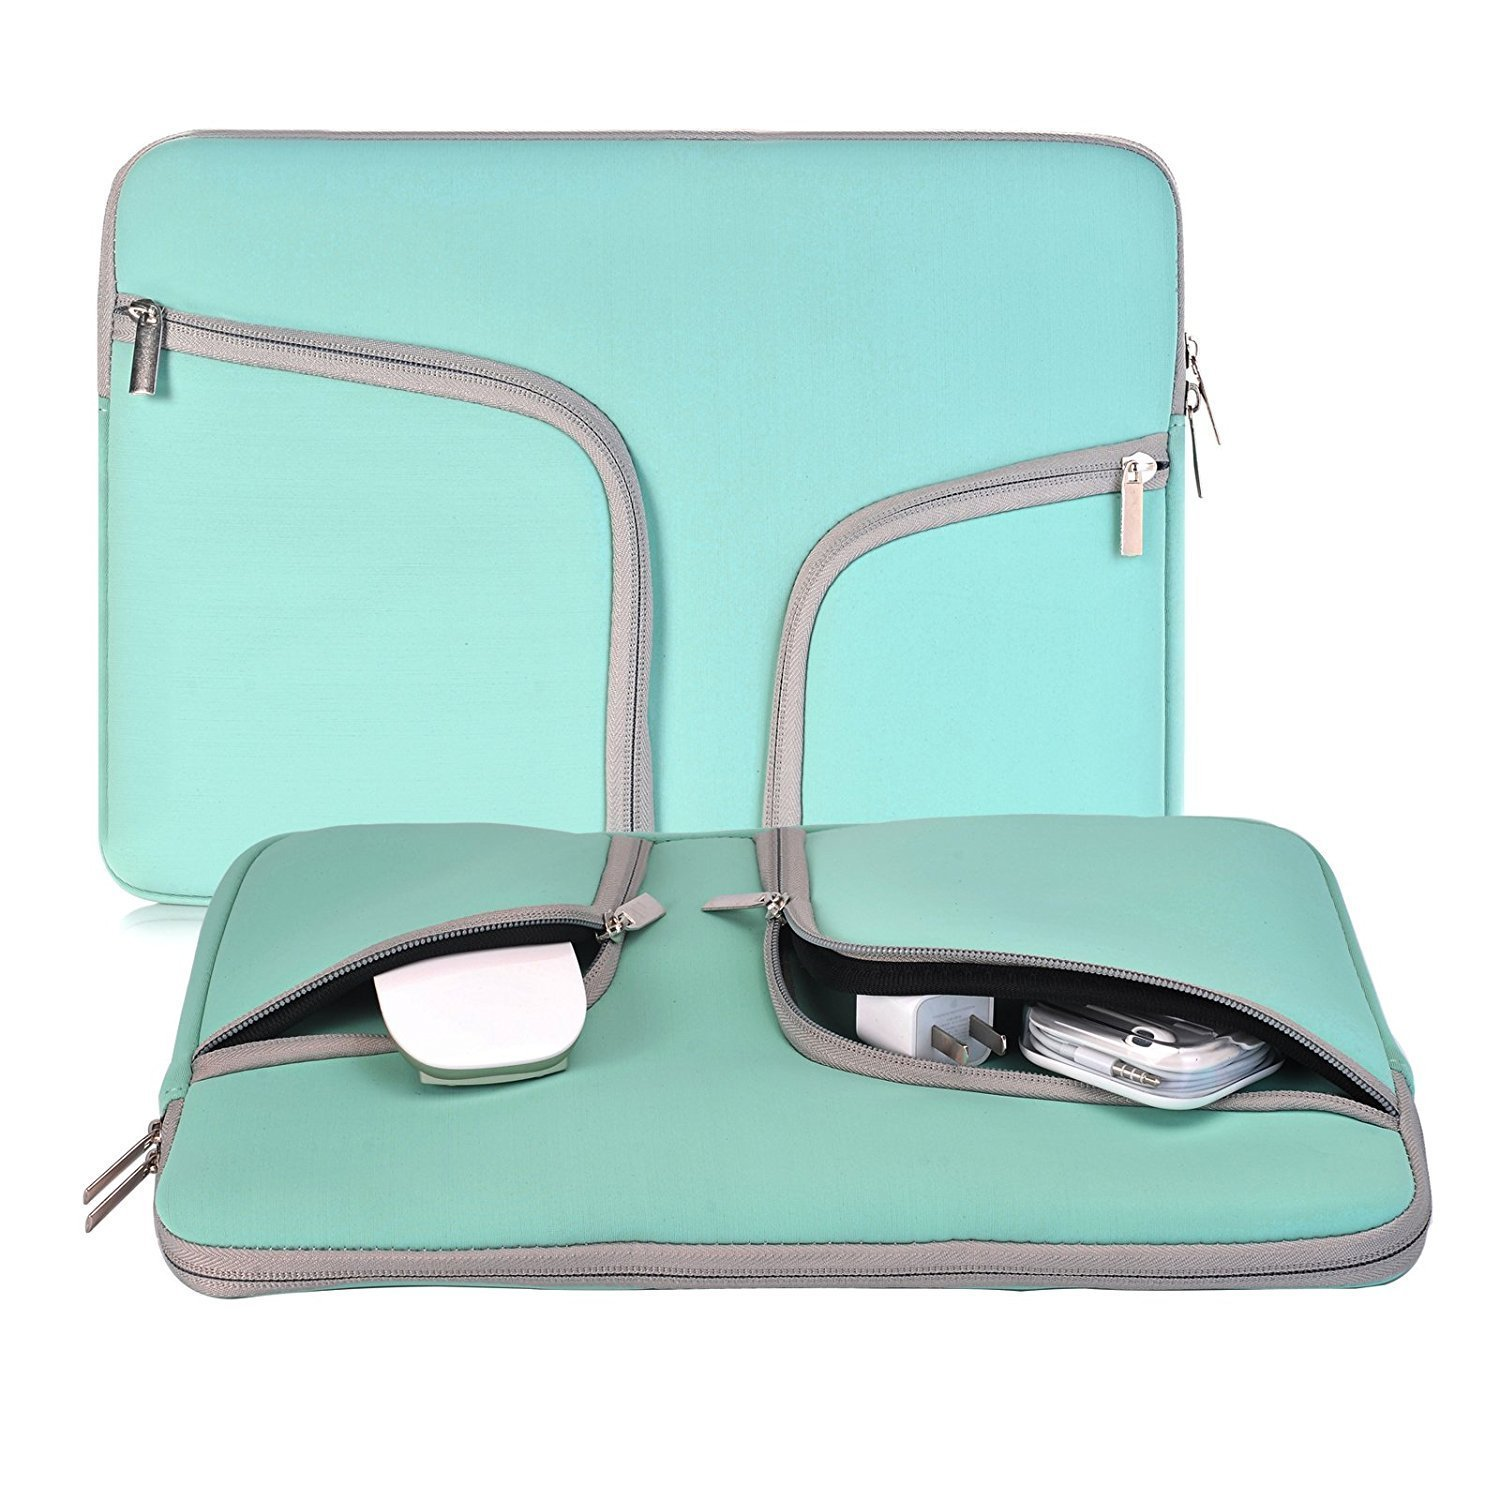 Laptop Sleeve Case 11.6-12.3 inch,Egiant Waterproof Protective Cases Bag Compatible Mac Air 11/Mac 12/iPad Tablet/Surface Pro 3 4/Chromebook 11, Notebook Carrying Case-Turquoise